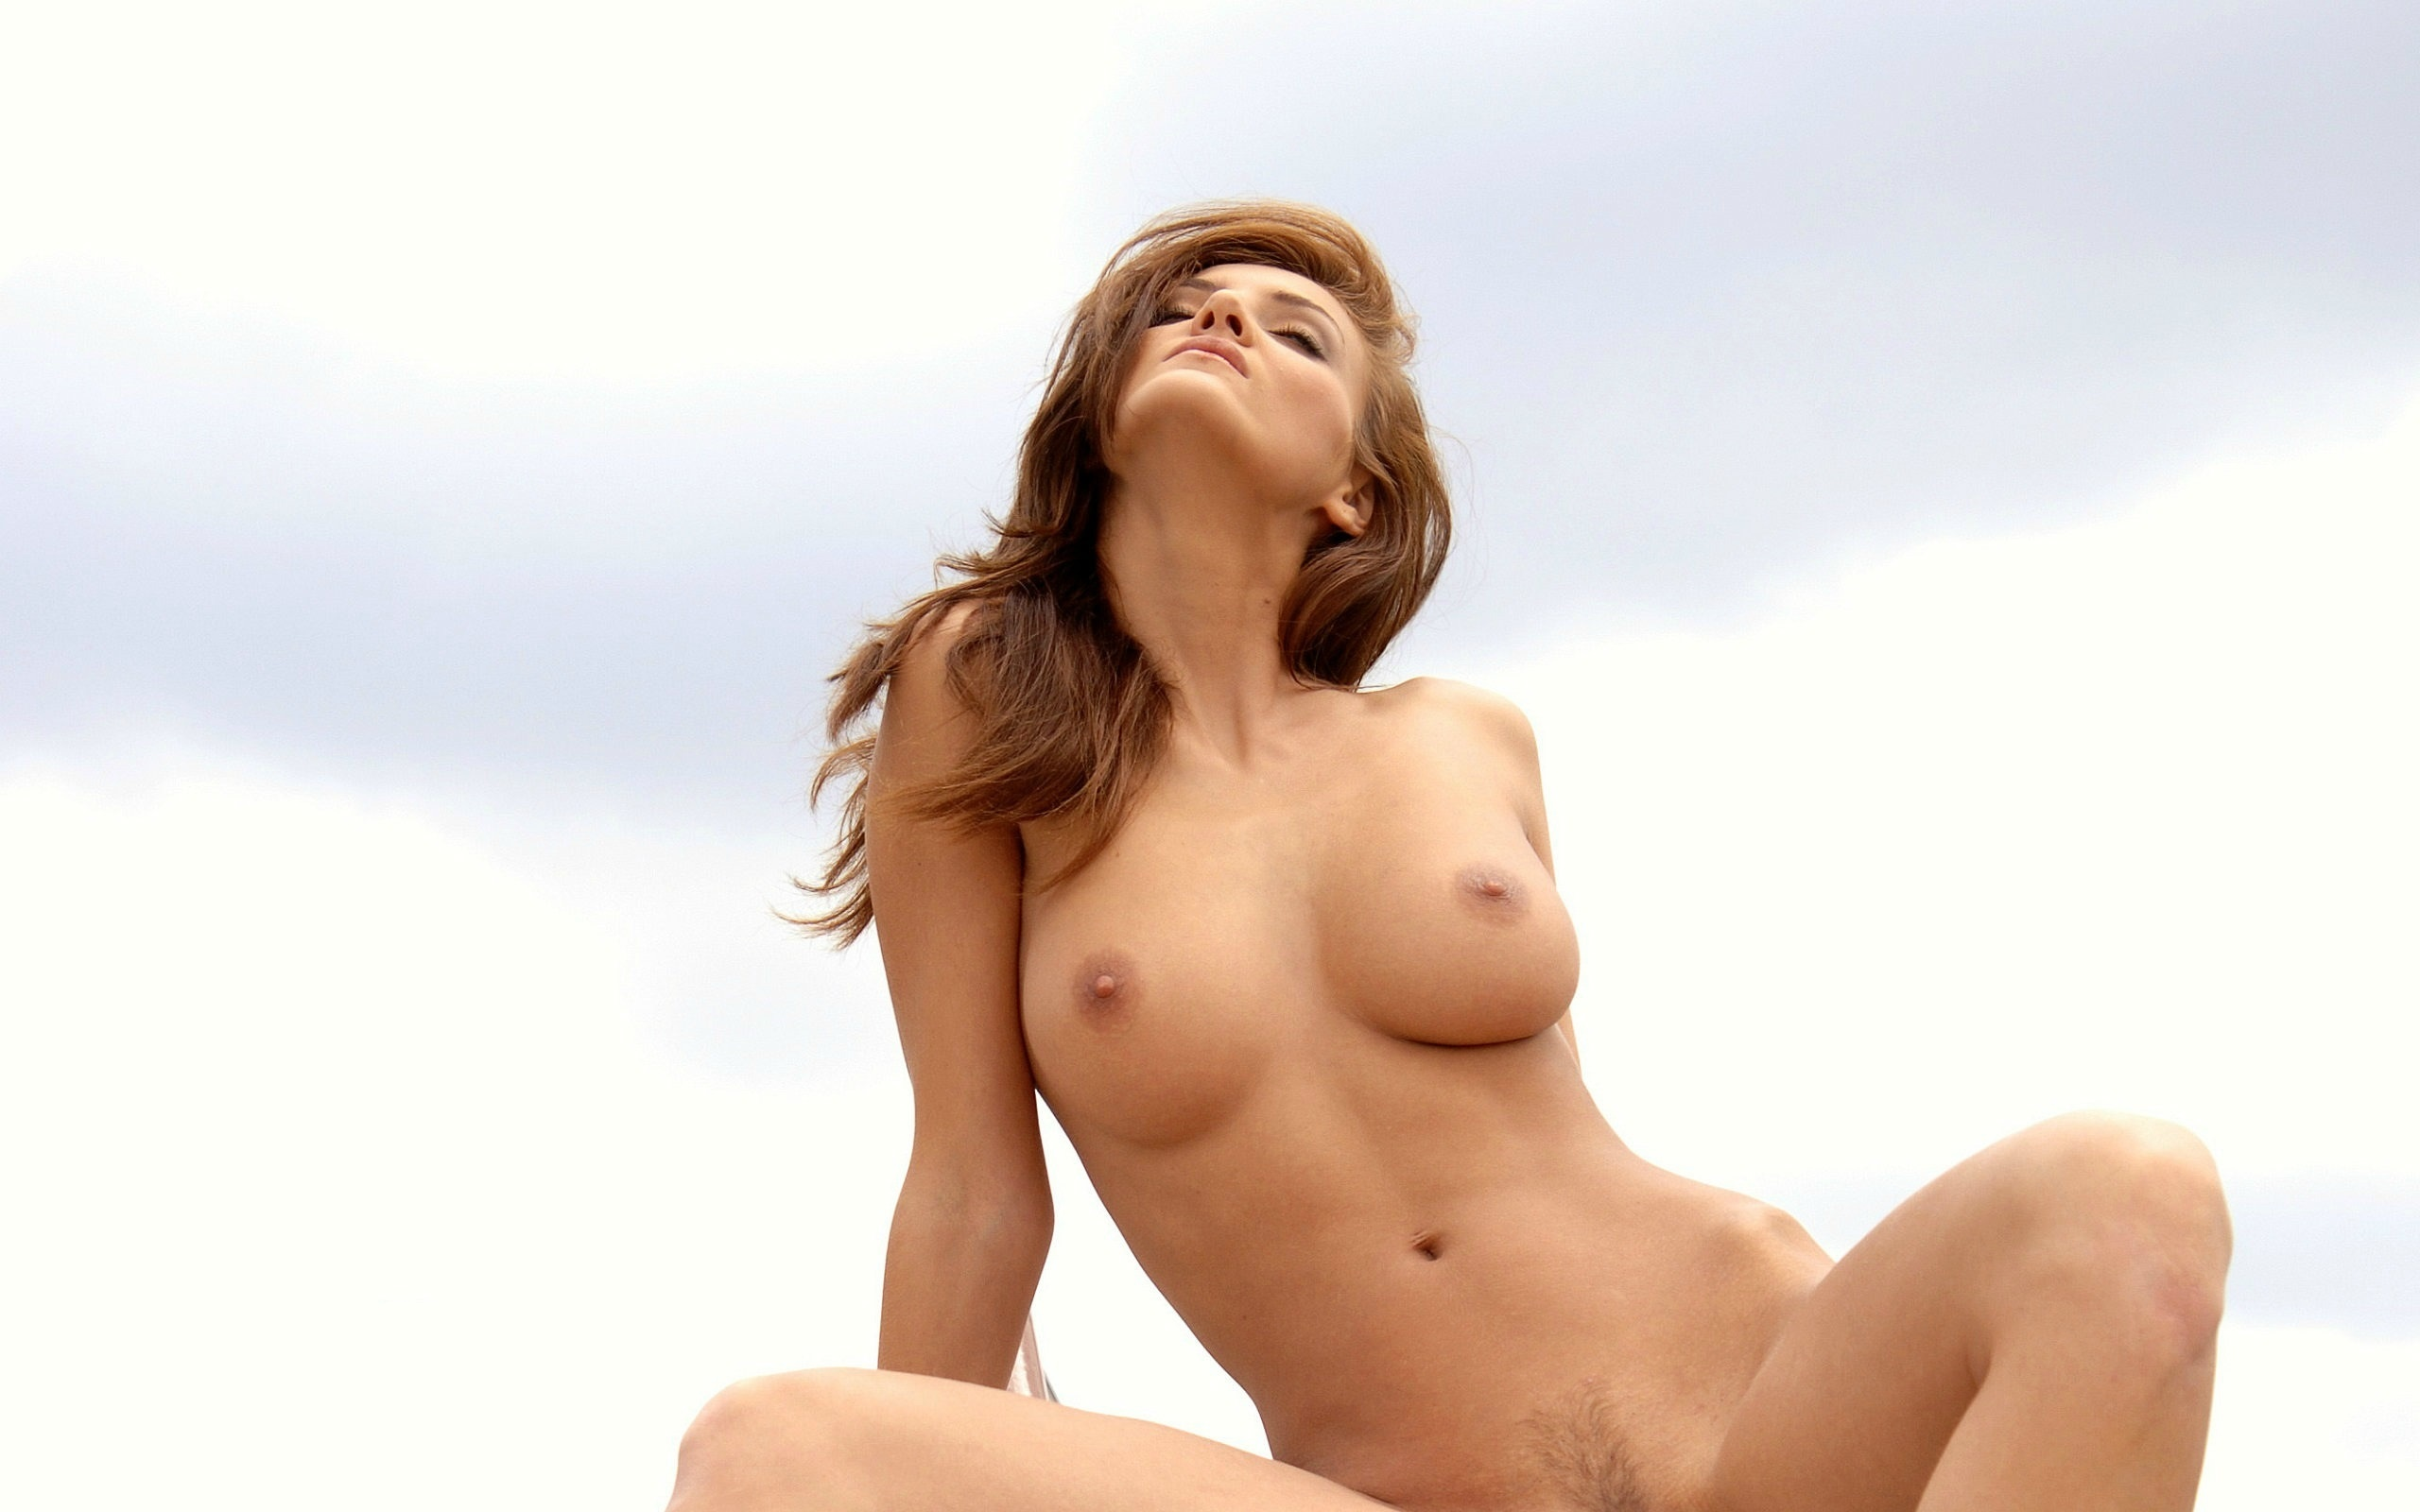 Final, perfect erotic boobs wallpapers criticising